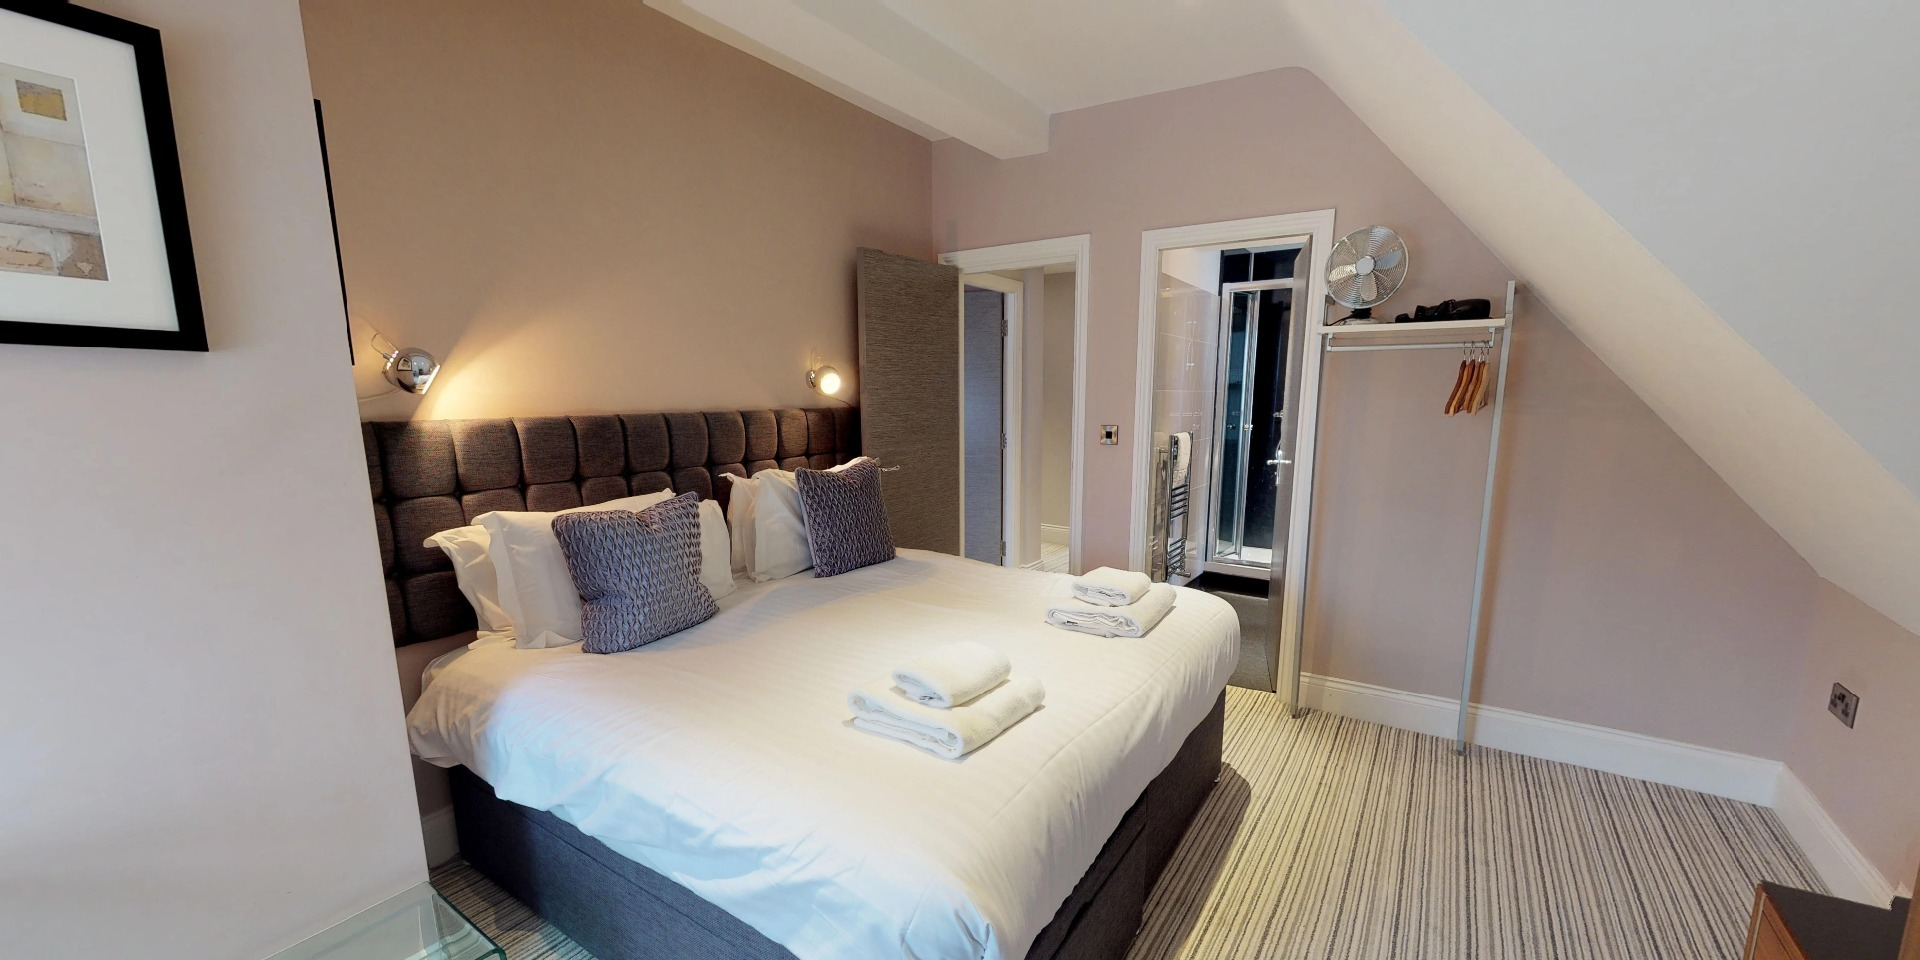 Harrogate Lifestyle offers stylish executive two bedroom two bathroom apartment for up to 4 people with double or twin bed set up facility. For Bookings Call now - 01423 568820